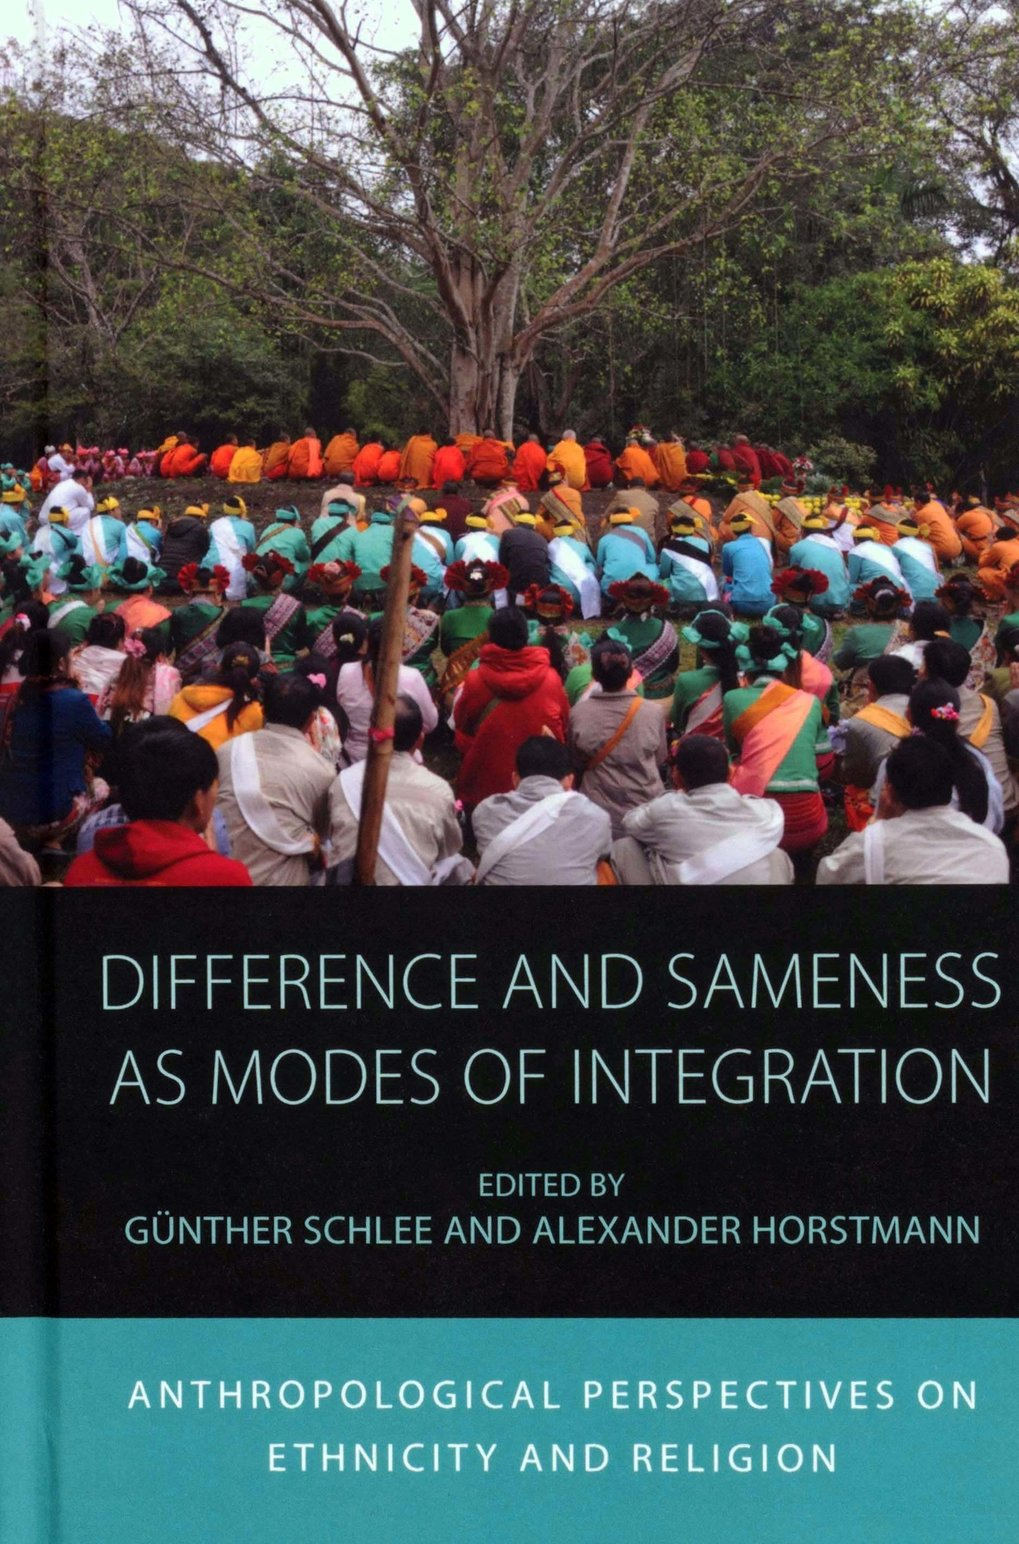 <strong>Authors<br /></strong>Günther Schlee, Alexander Horstmann (eds.)<br /> <p><strong>Publisher<br /></strong>New York, NY; Oxford: Berghahn</p> <strong>Year of Publication</strong><br />2018 <br /><br /><strong>ISBN</strong><br />978-1-78533-715-4<br /><br />